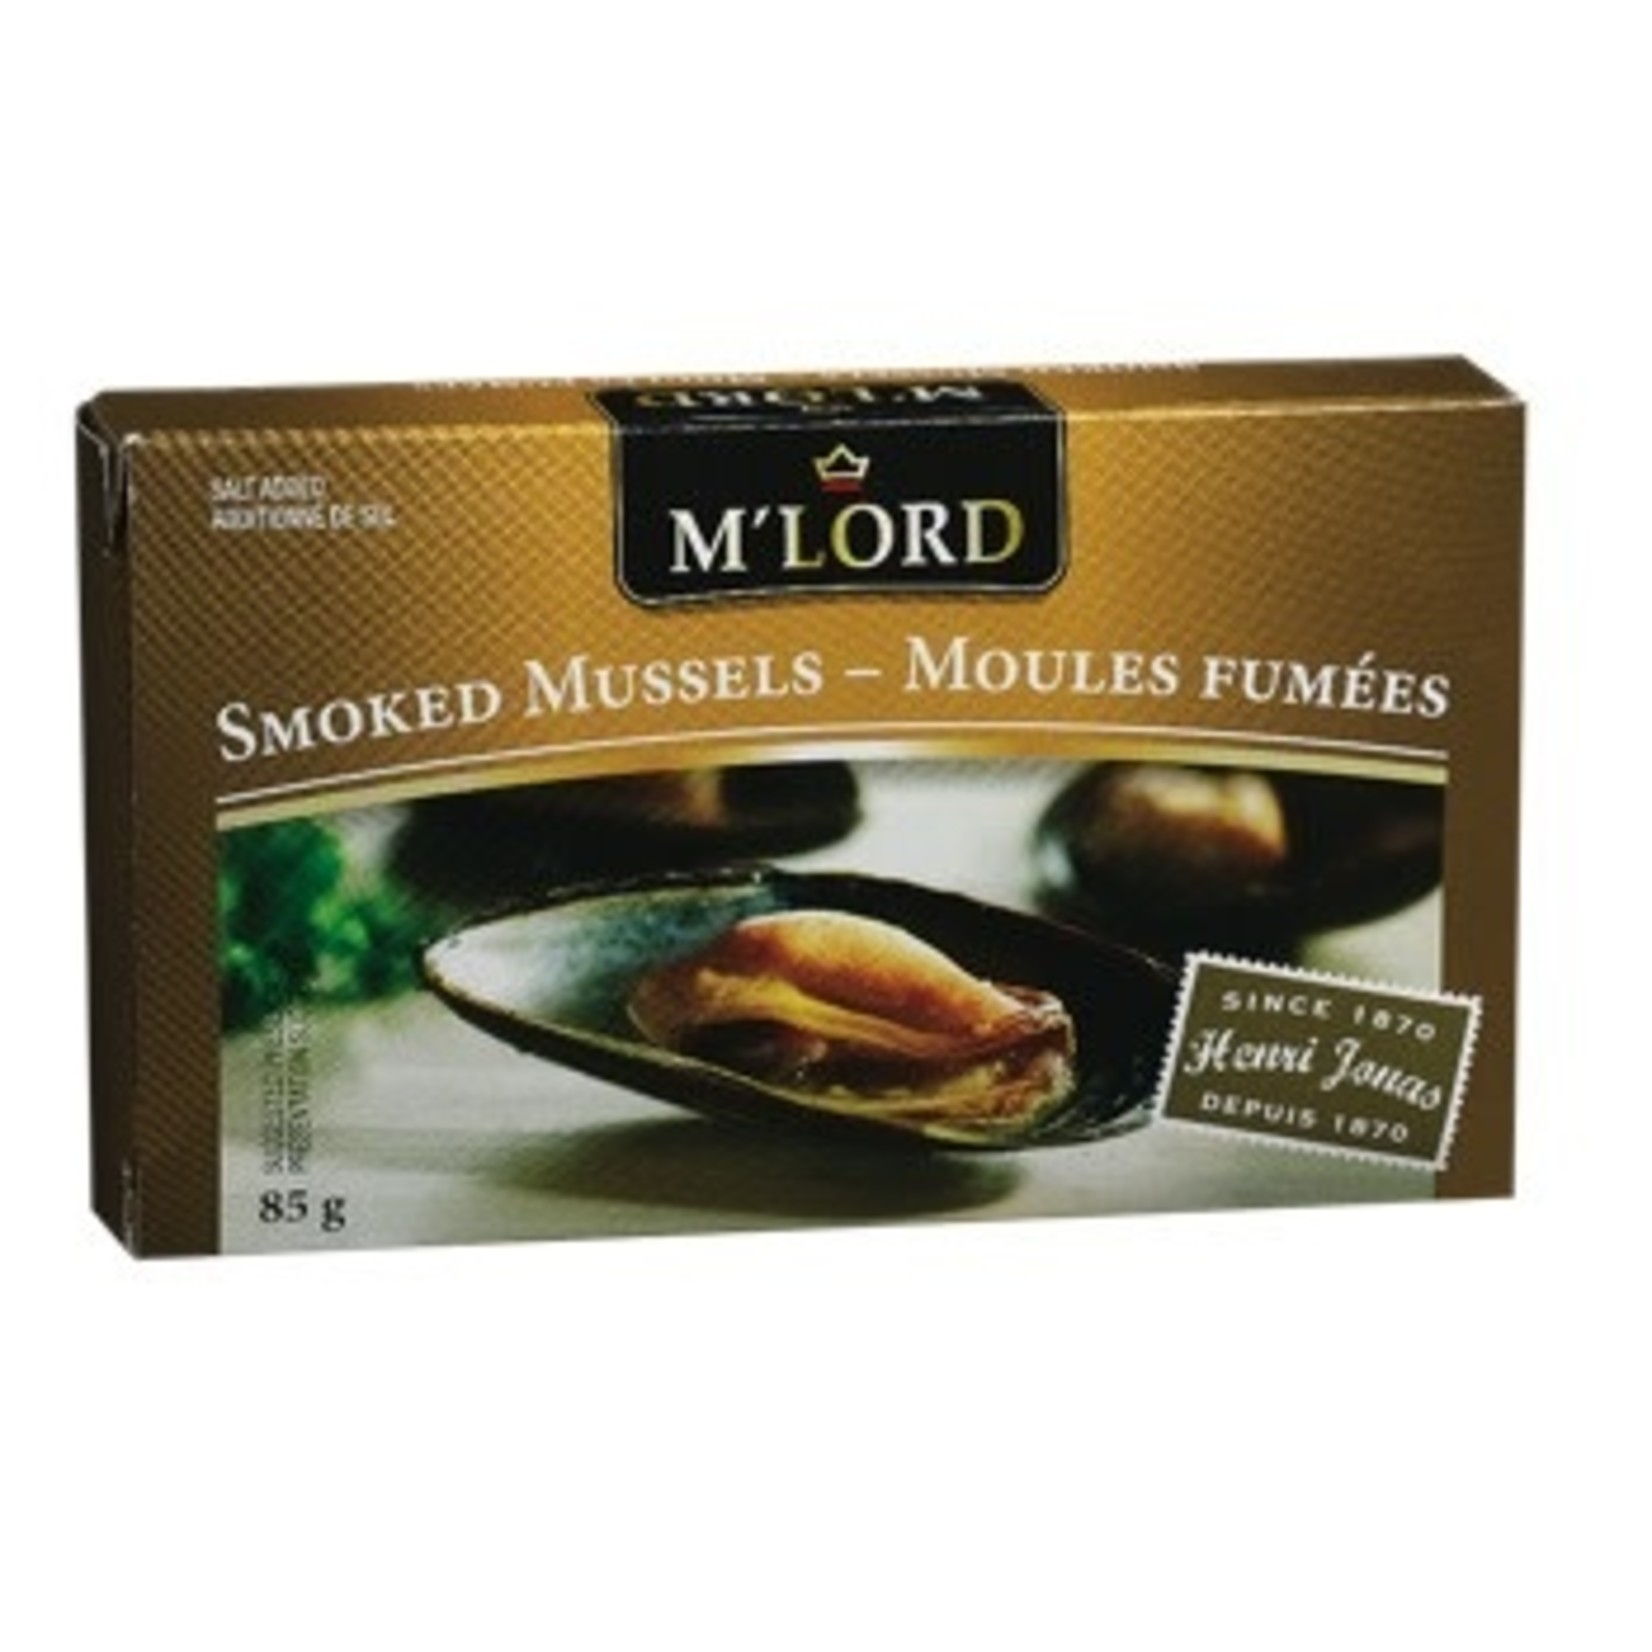 M'Lord Smoked Mussels 85g